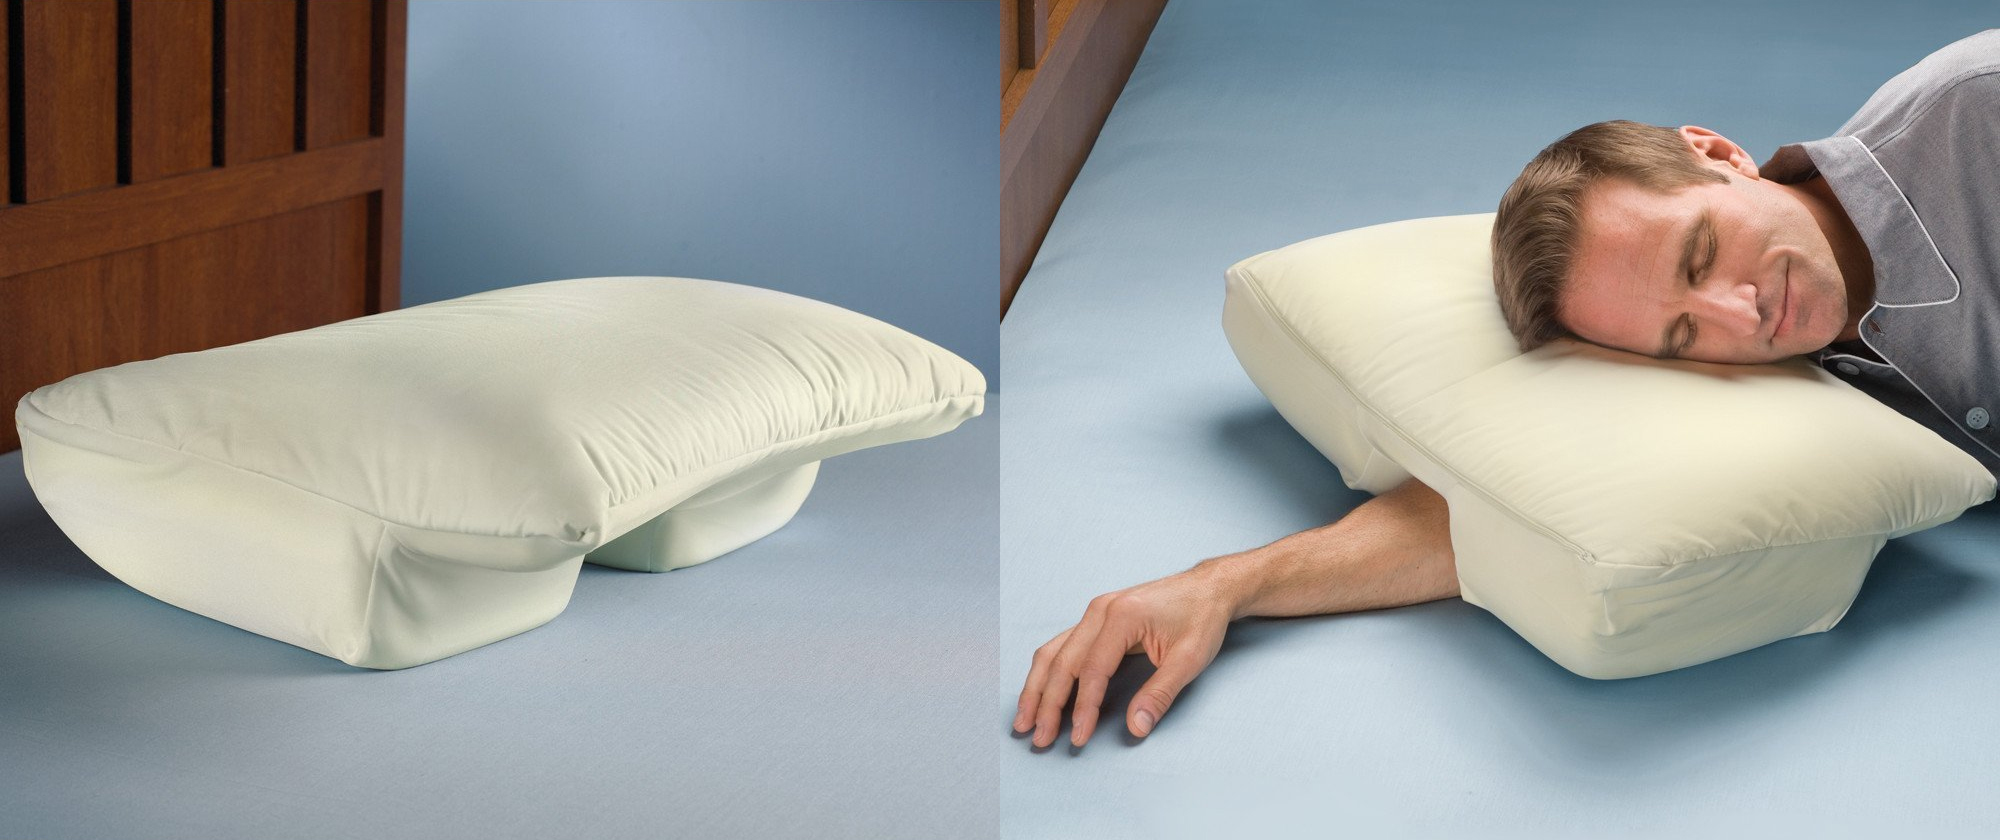 Side Sleepers pillow arm space funny nap gadget